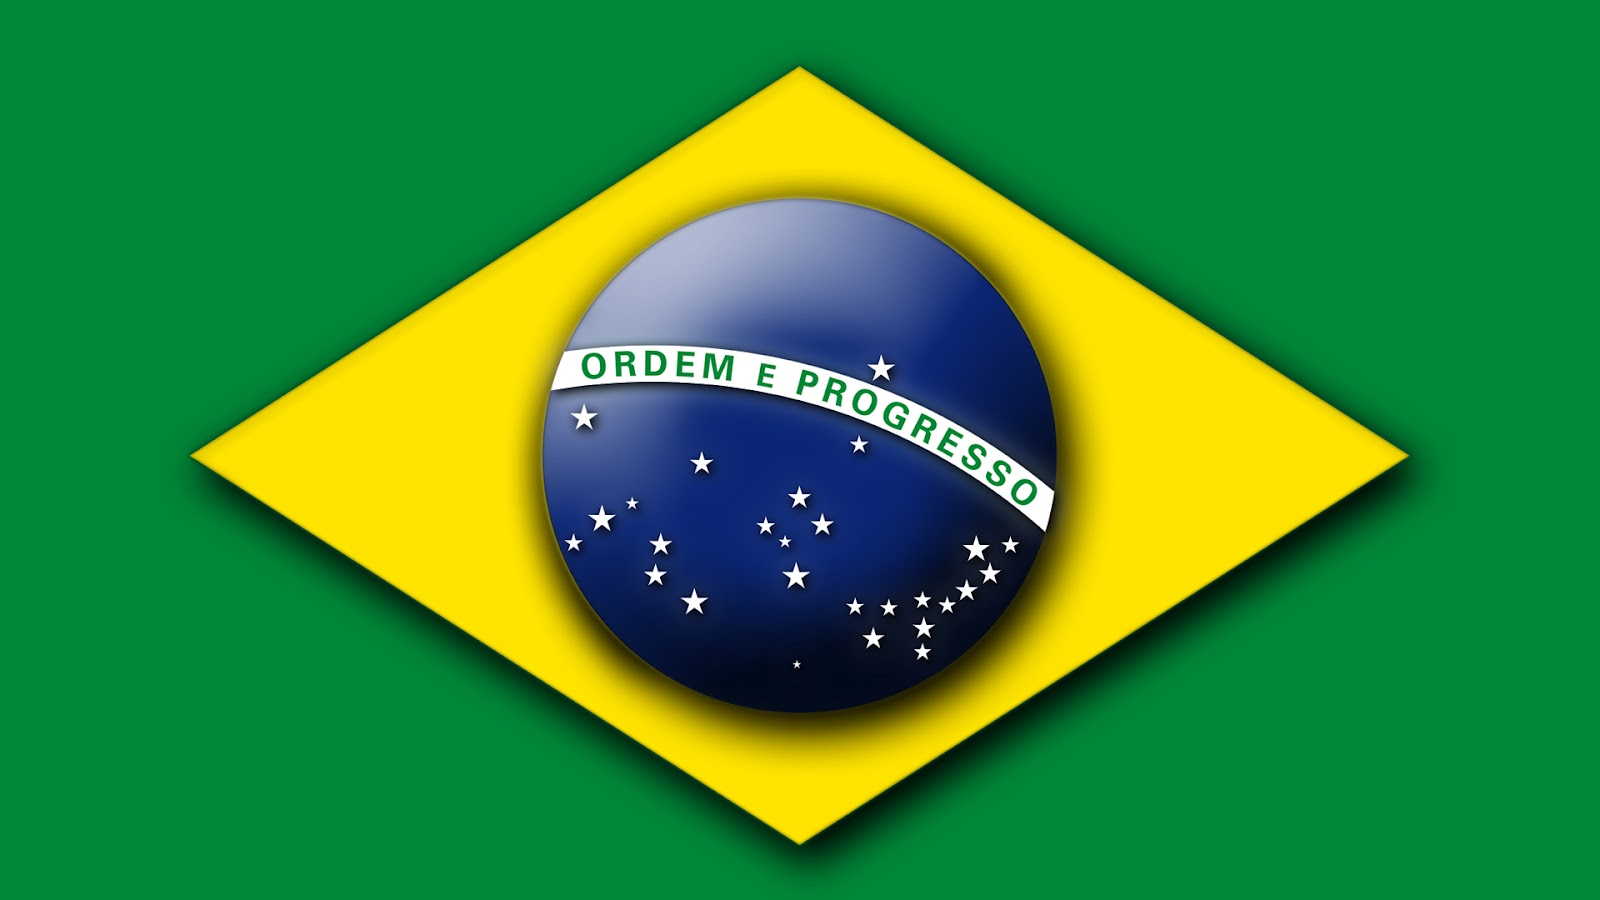 Brazil business leaders seeking help to protect and grow business faster